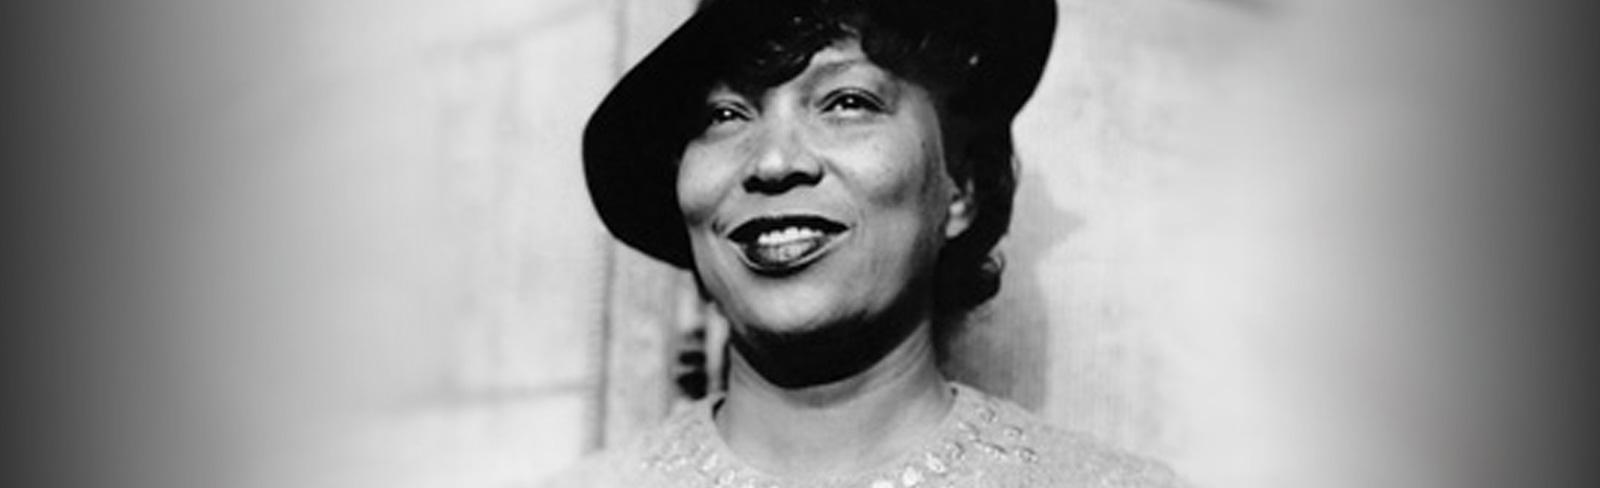 biography zora neale hurston writer the heroine collective image by